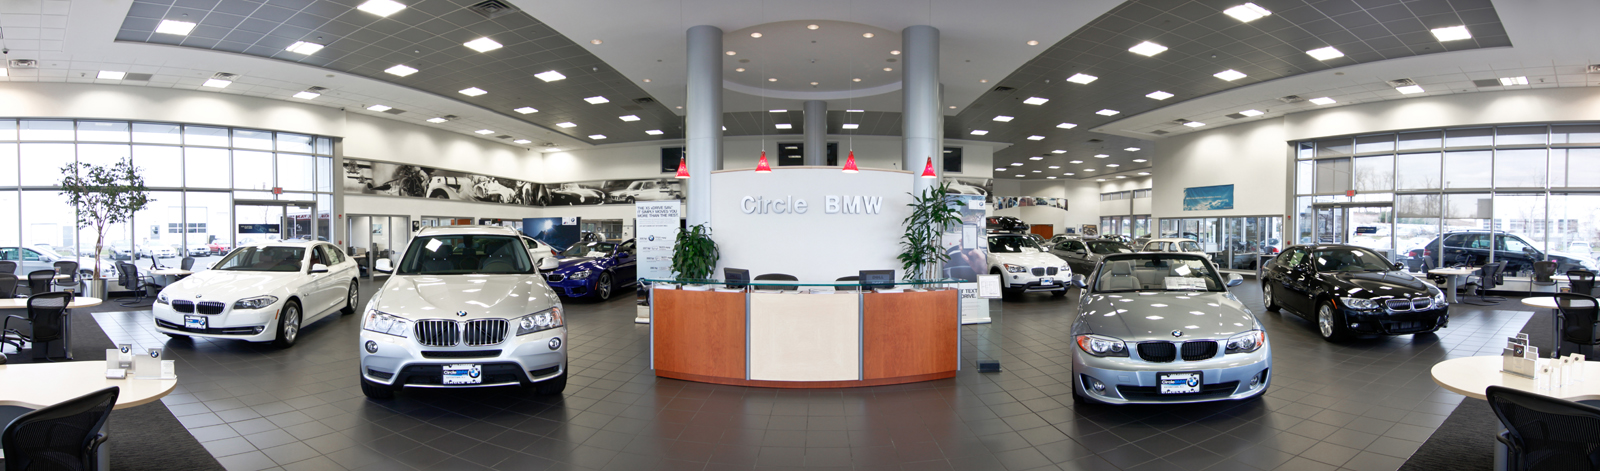 Circle Bmw Google Business View Eatontown New Jersey